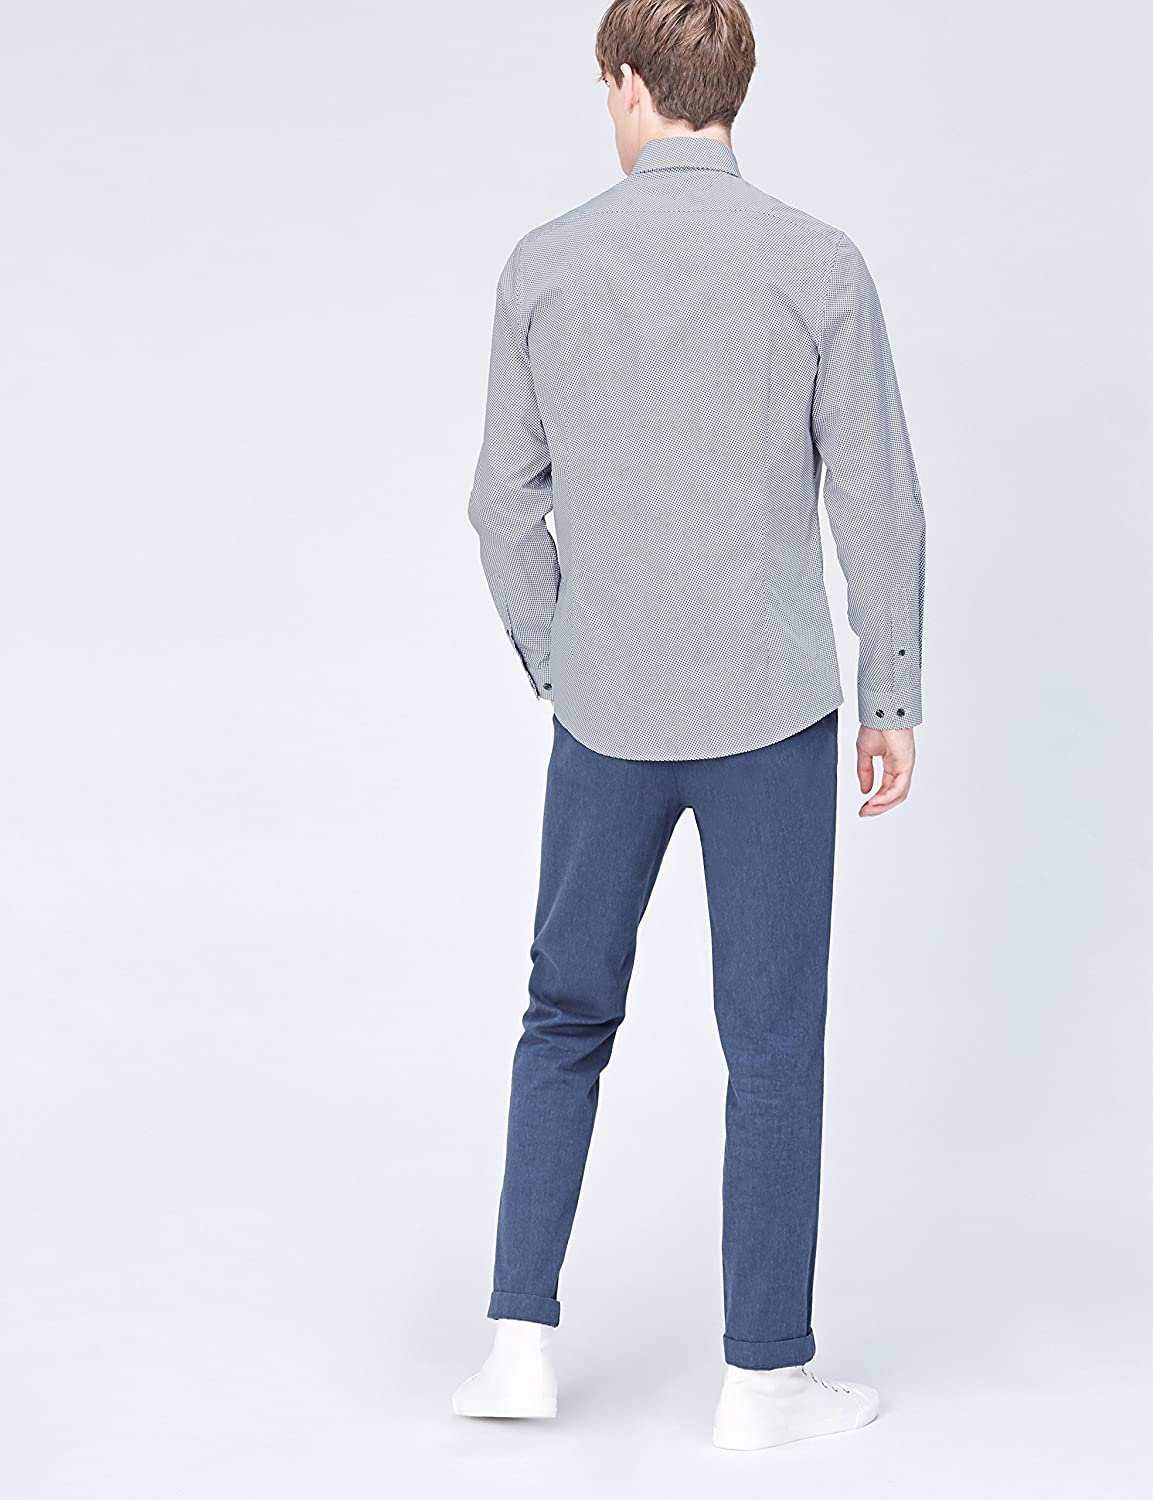 Marque find Chemise Habill/ée Homme